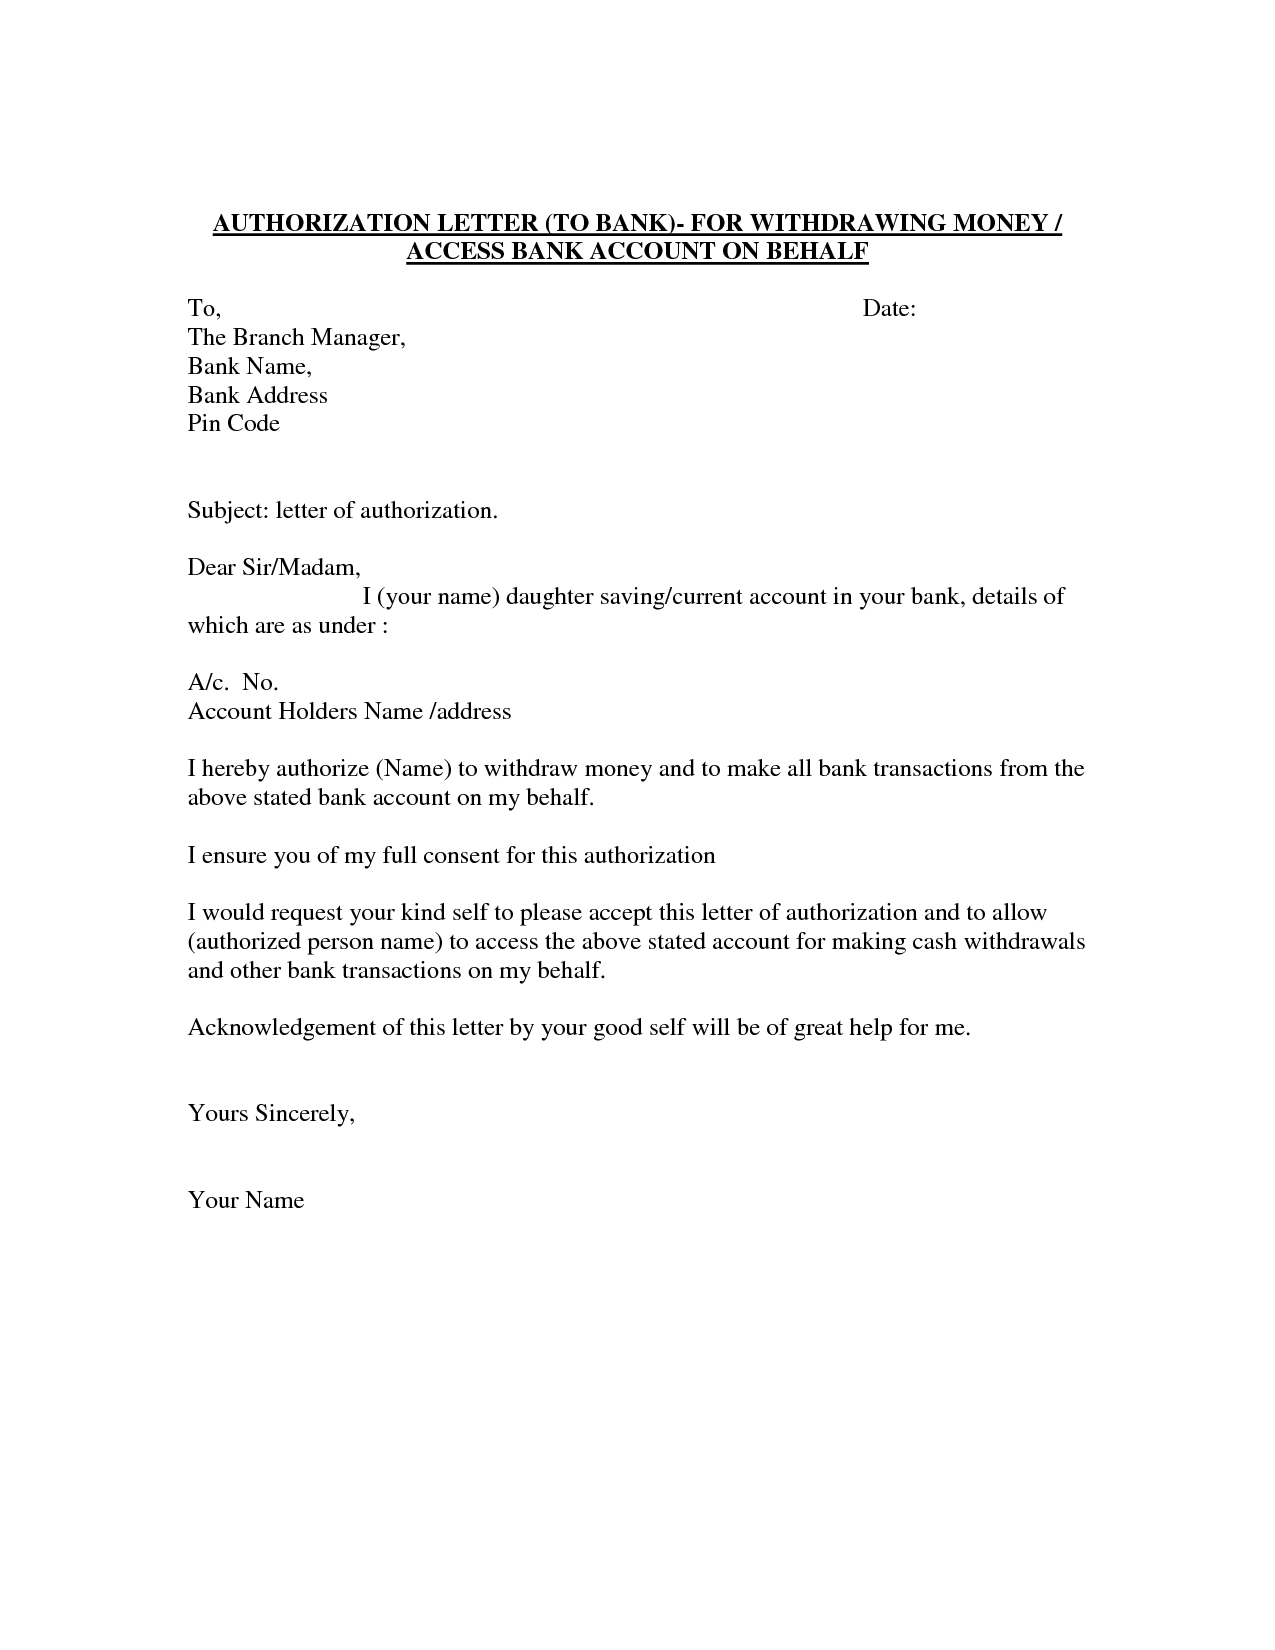 Sample Authorization Letter to Bank to Withdraw Money